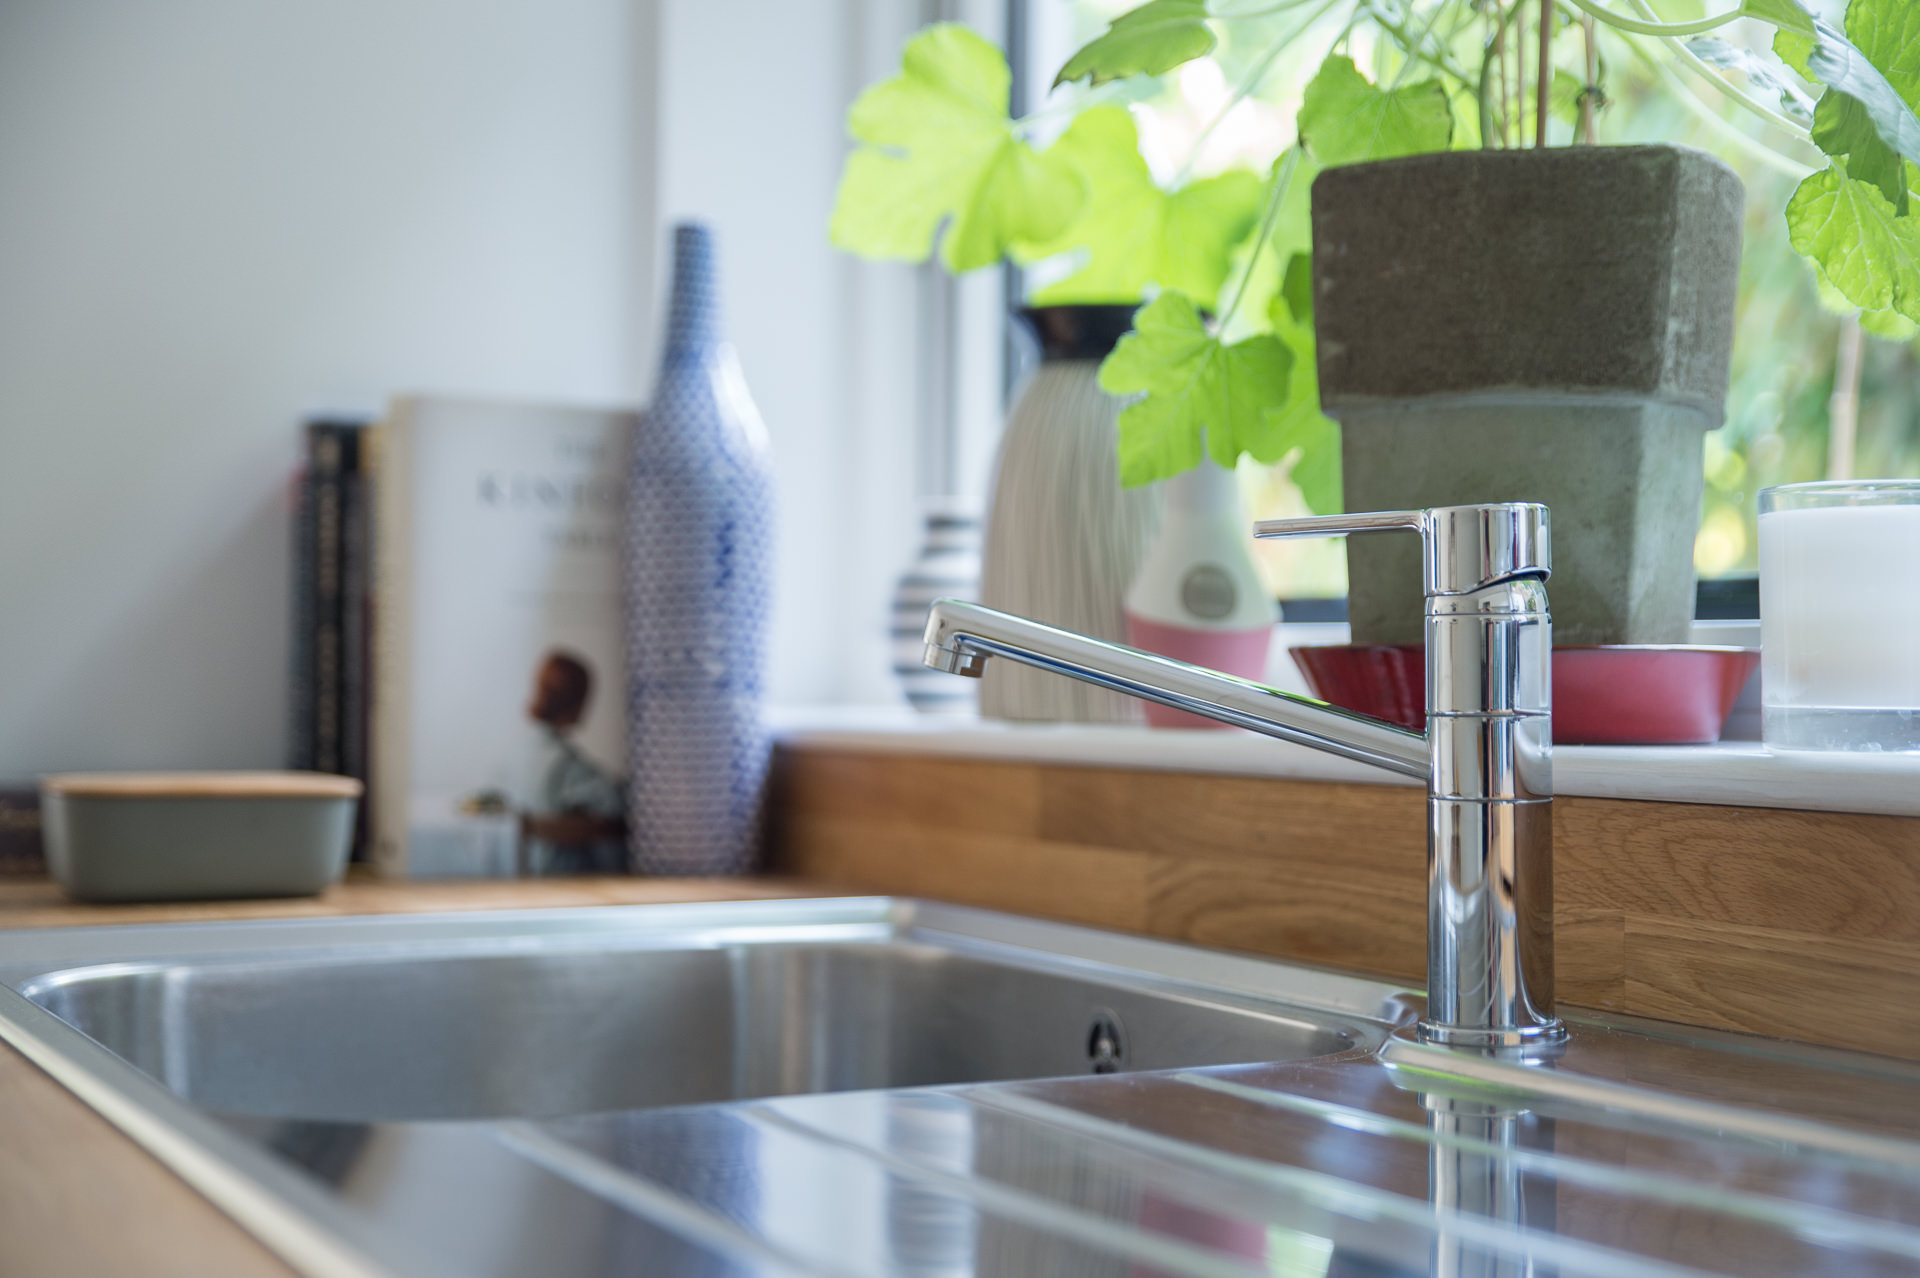 kithen sink and tap sideview